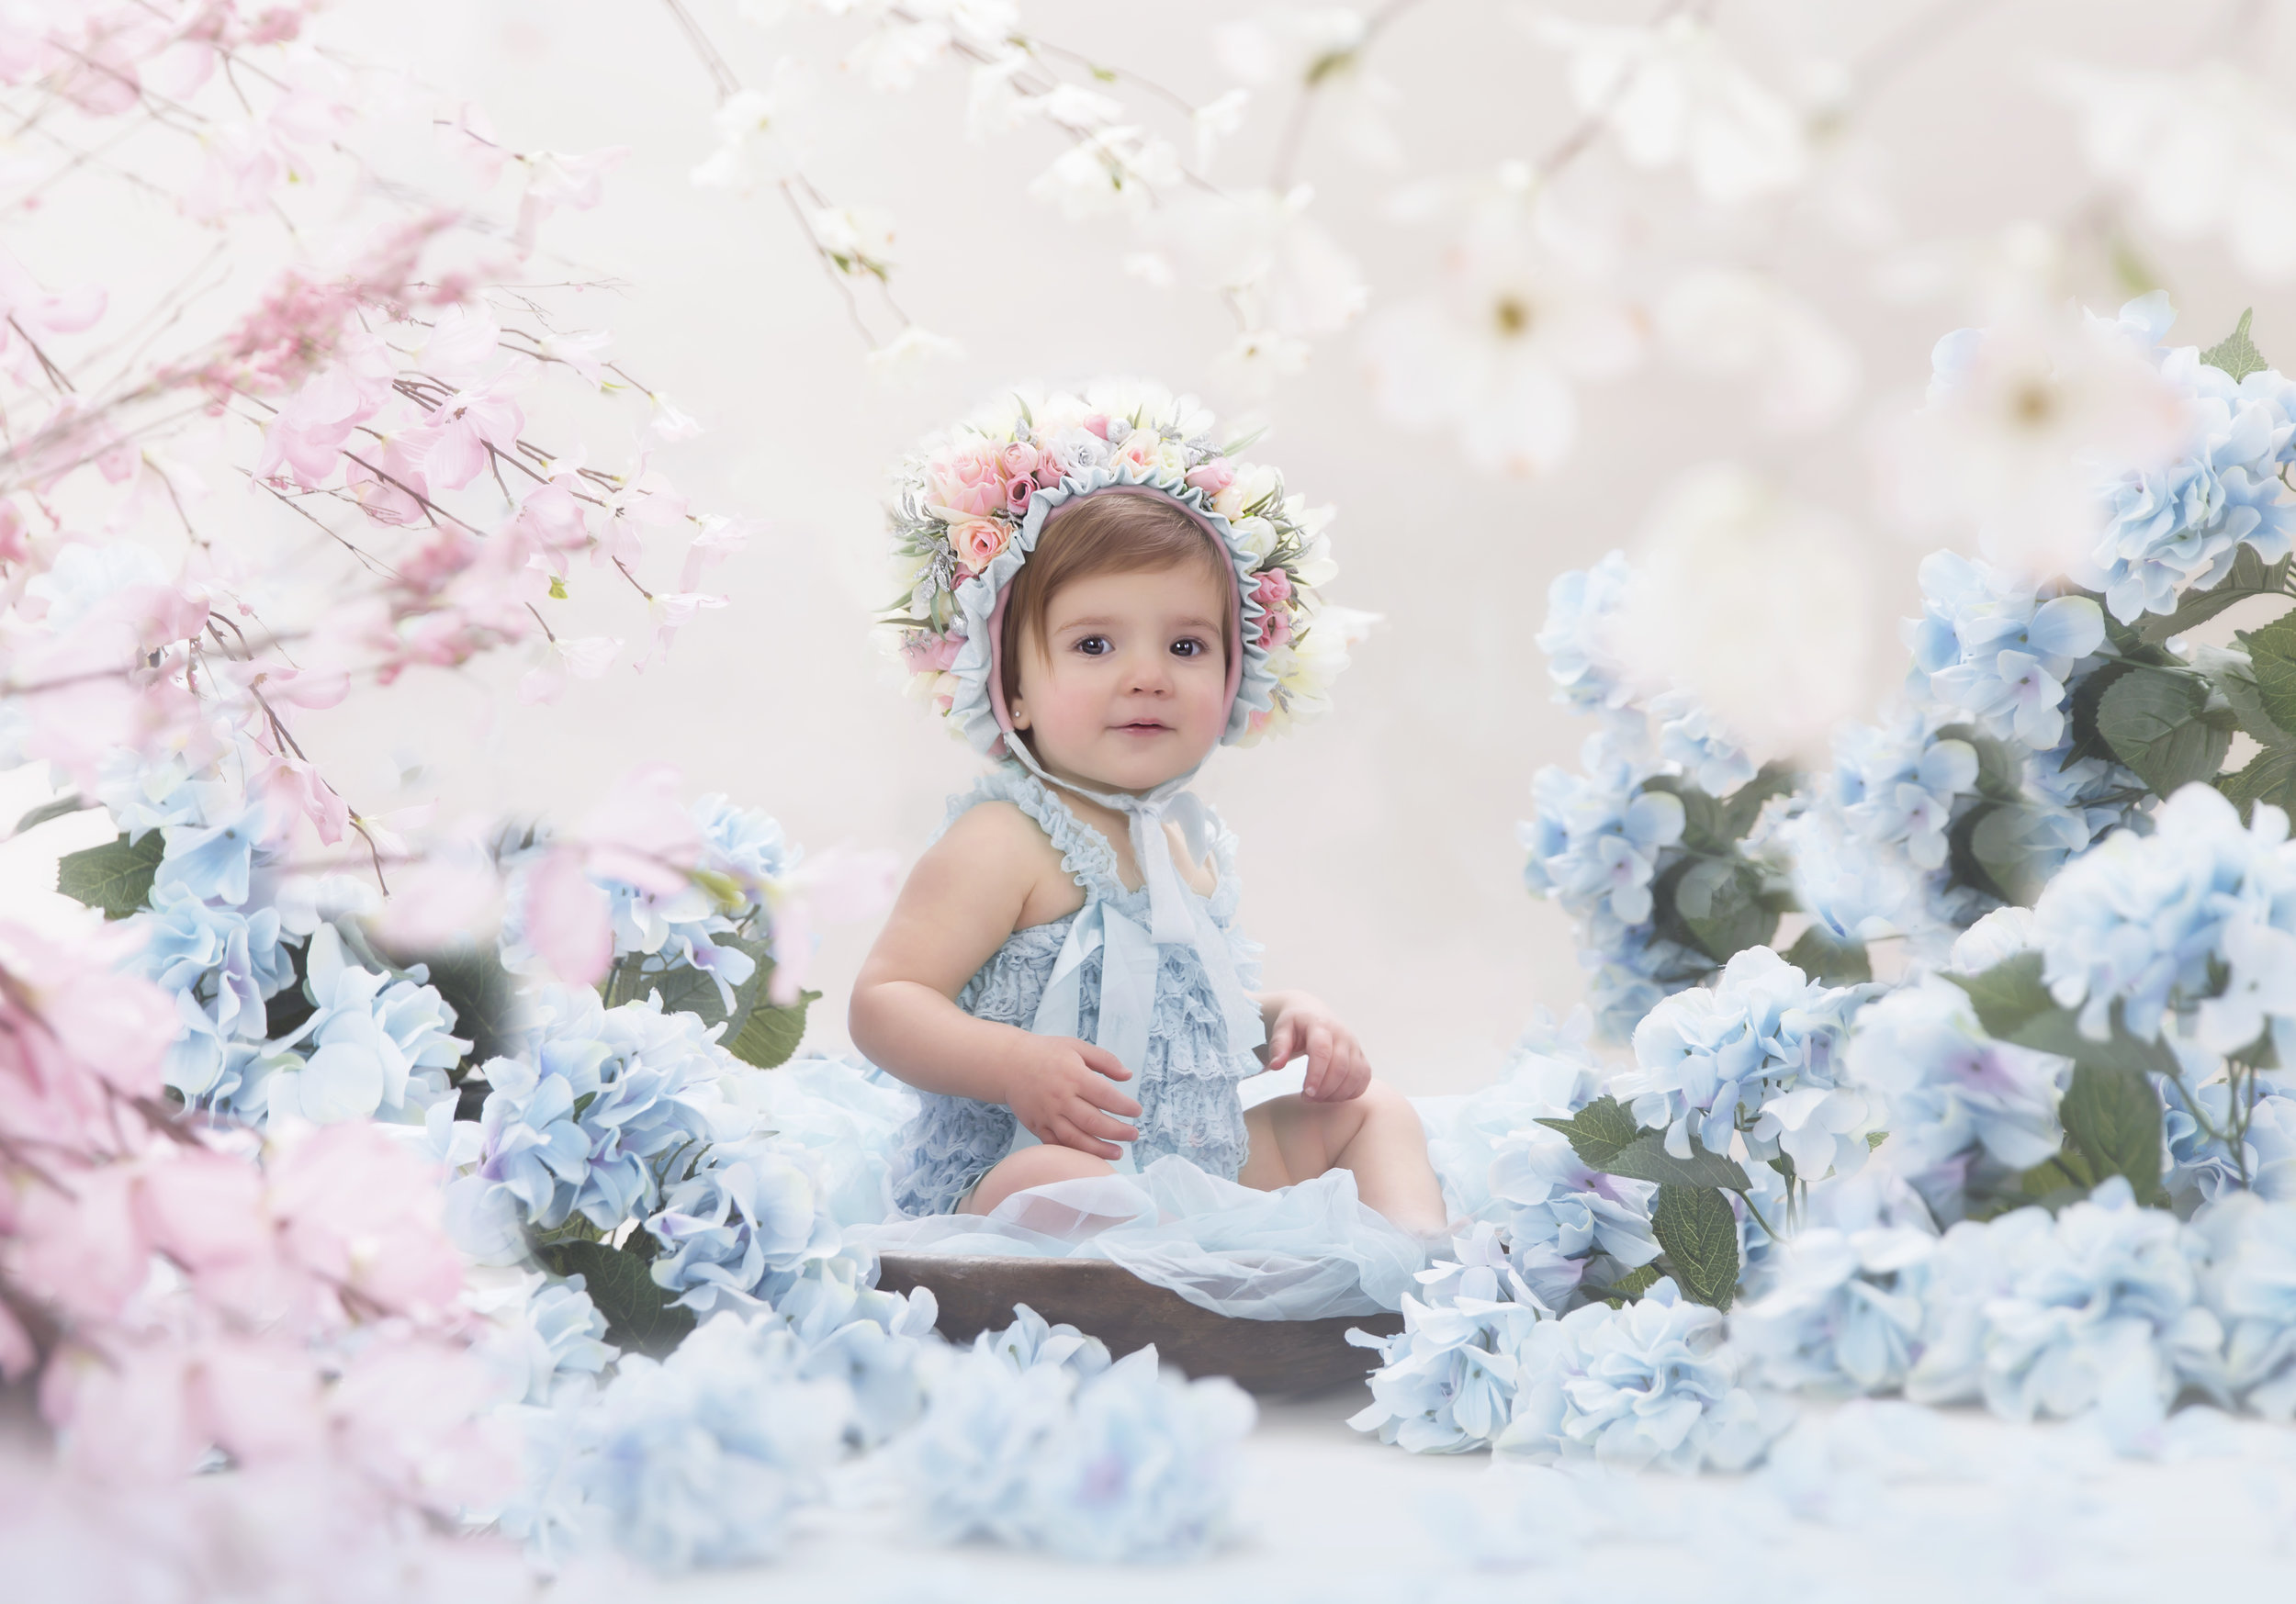 Buffalo-ny-baby-photographer-belle-idee-photography.jpg